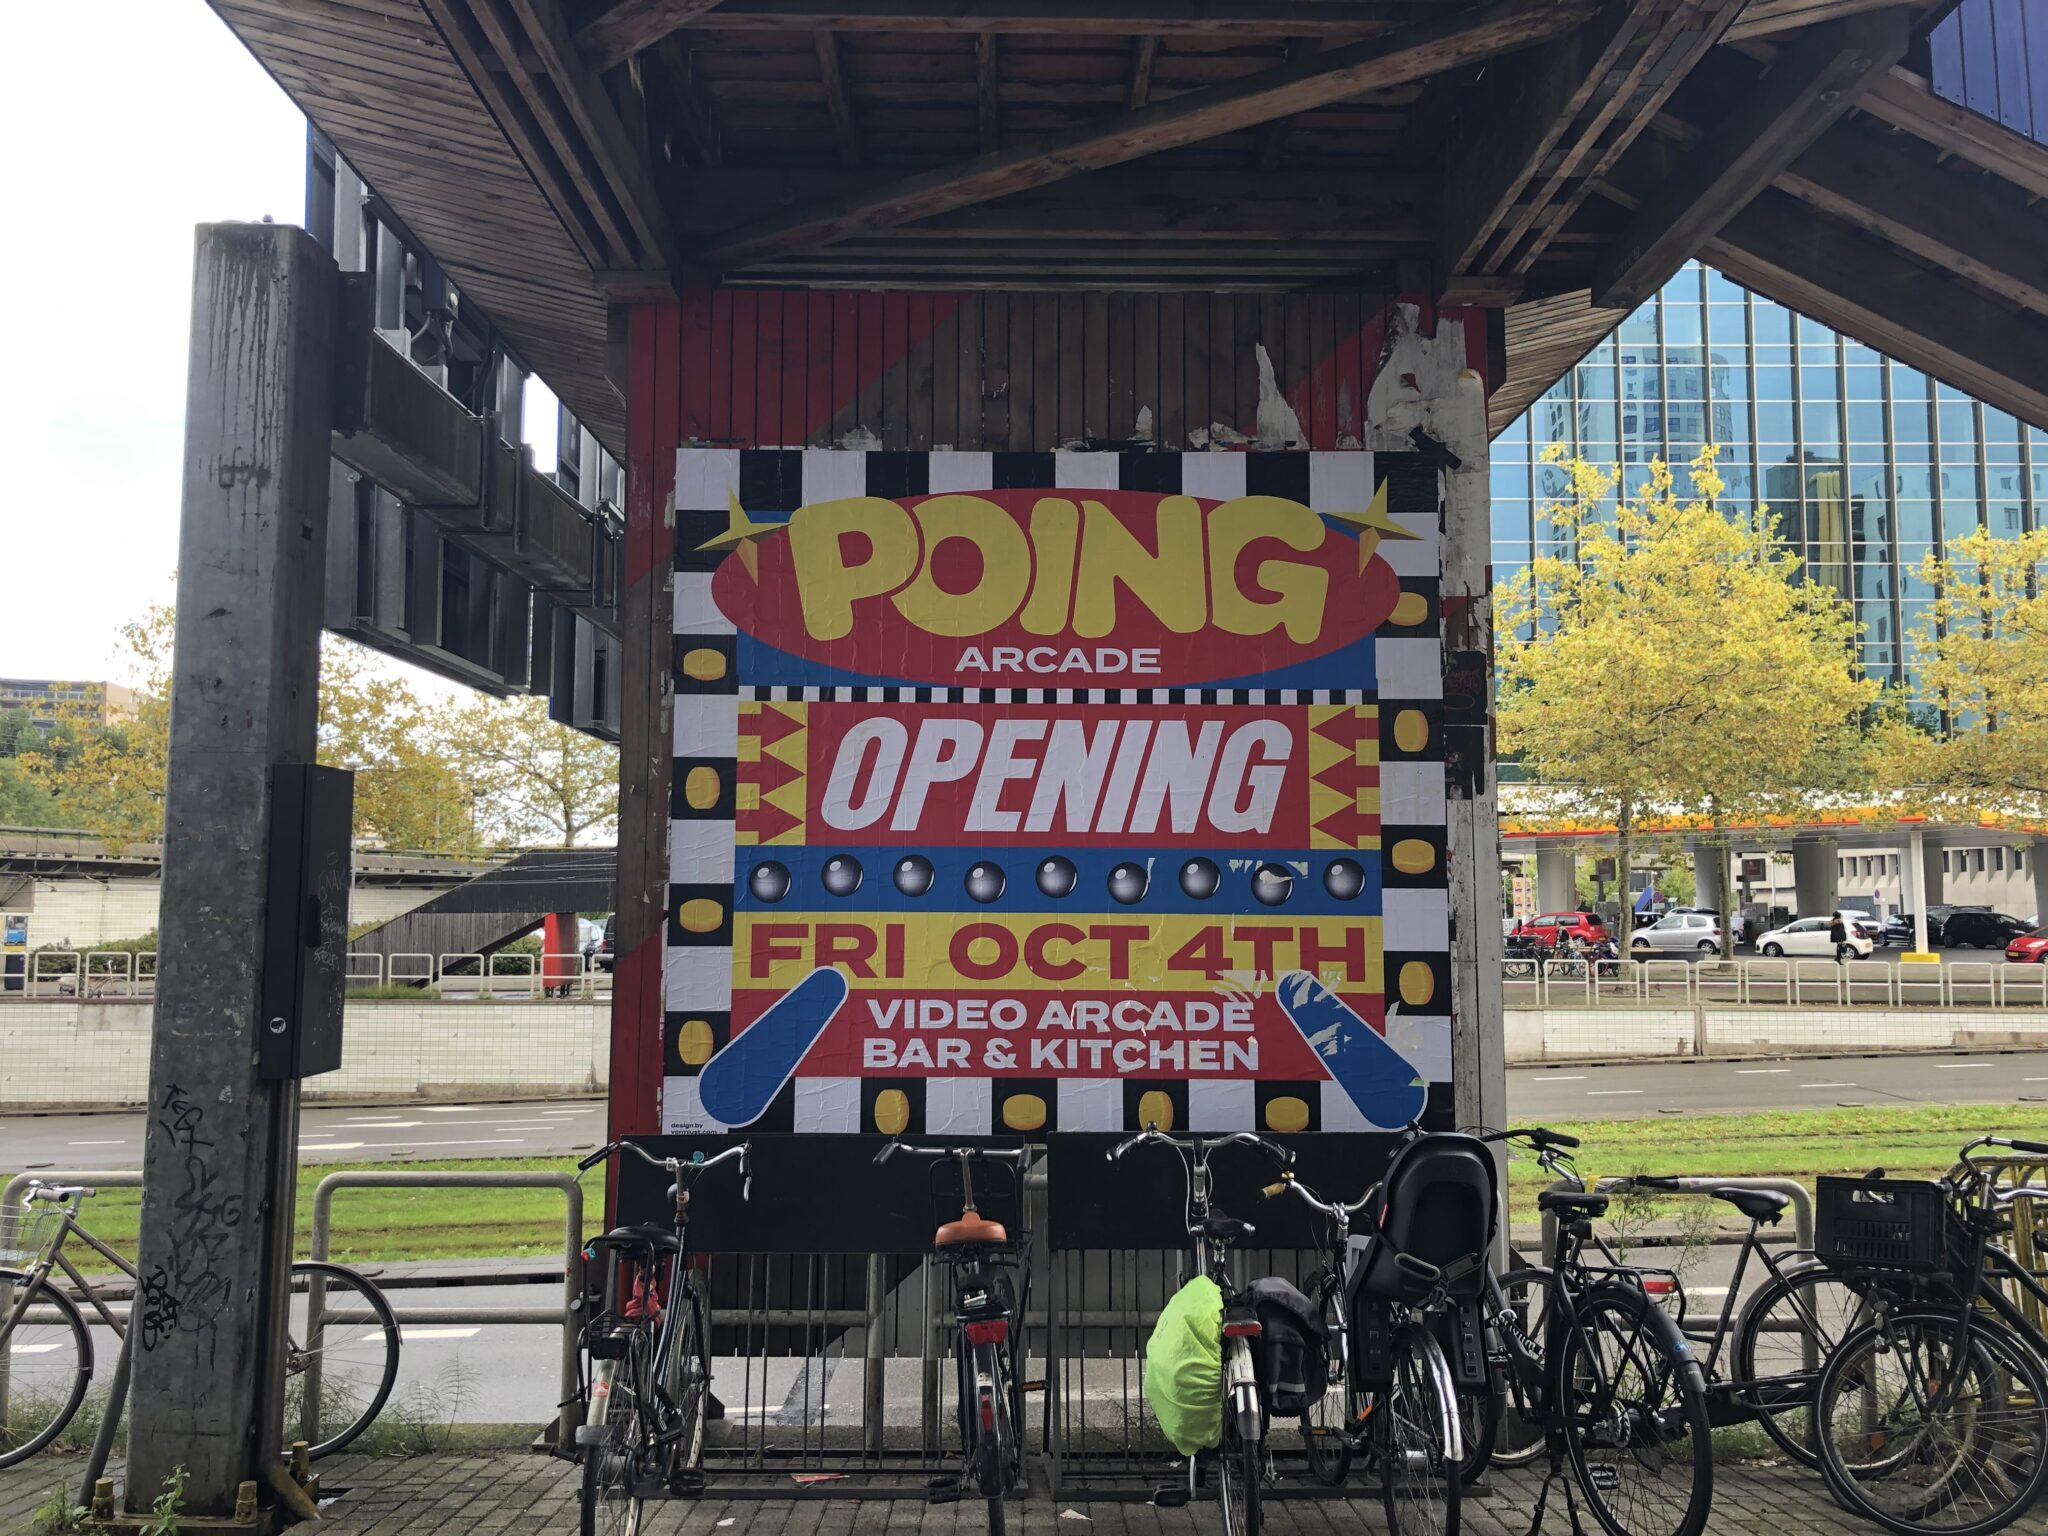 POING opening